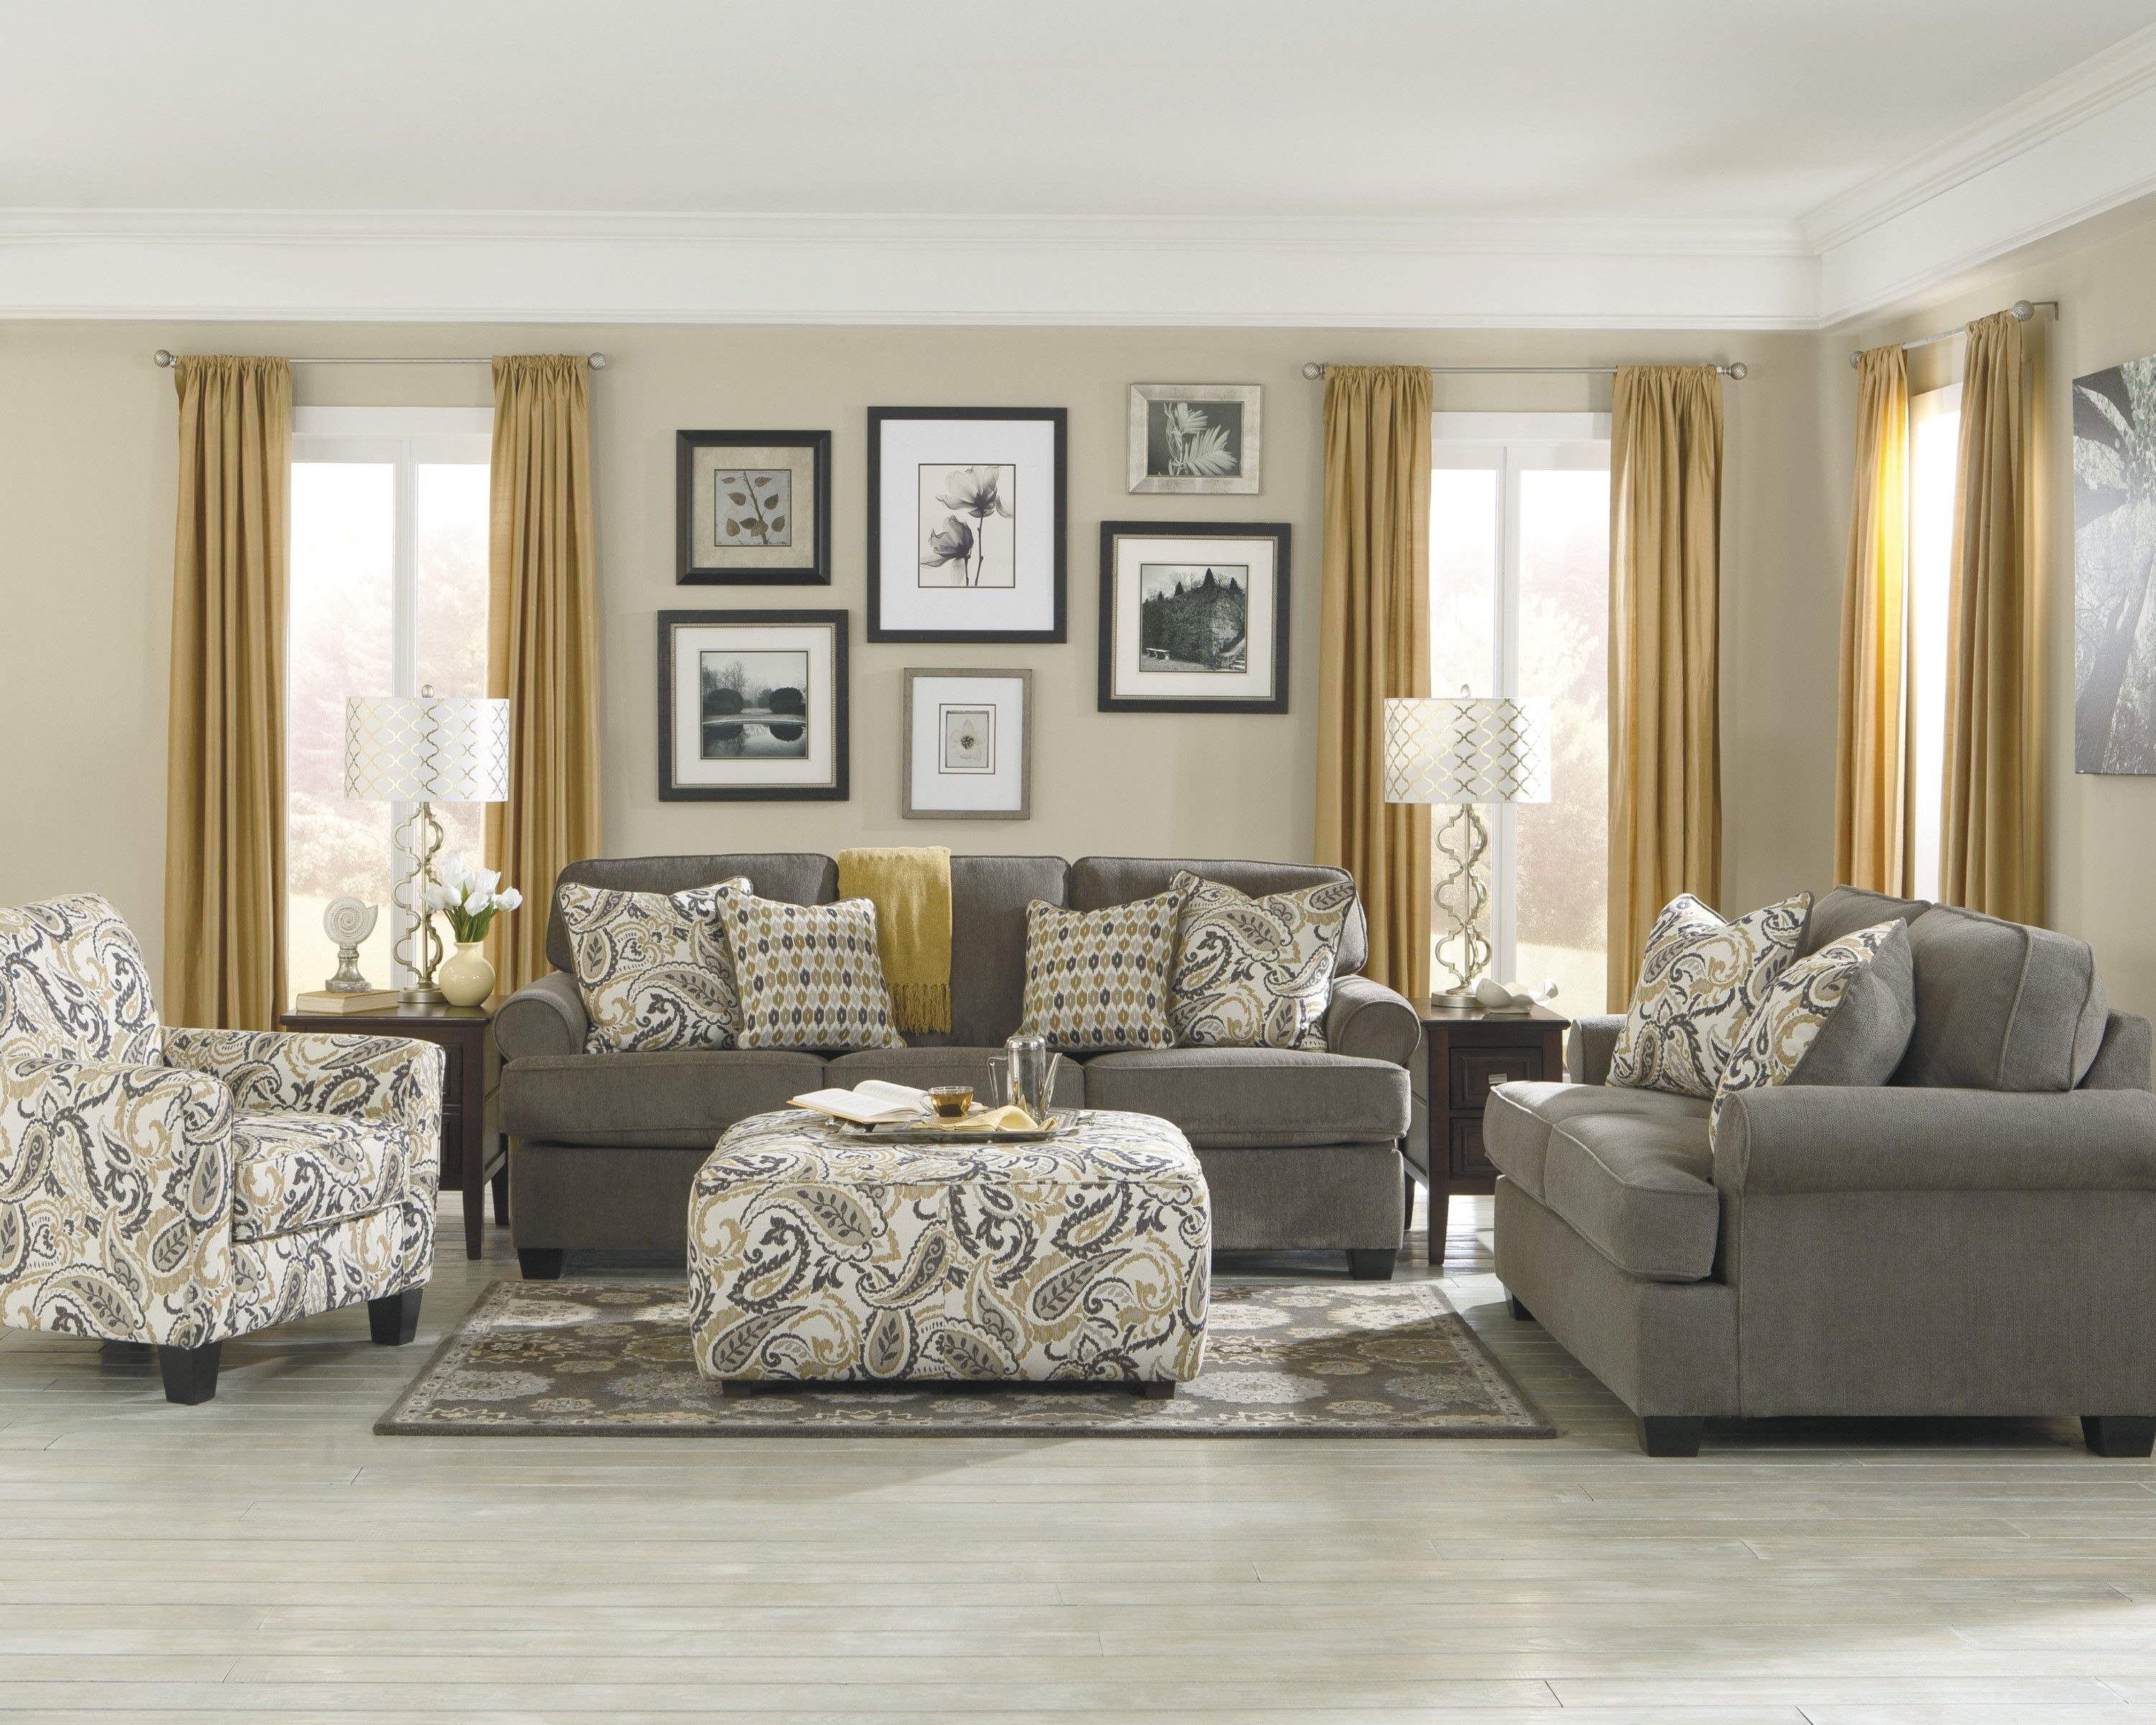 Check Out Living Room Furniture Ideas Living Room Furniture Ideas Will Help You Select A Sofa Or Grey Furniture Living Room Gold Living Room Living Room Grey